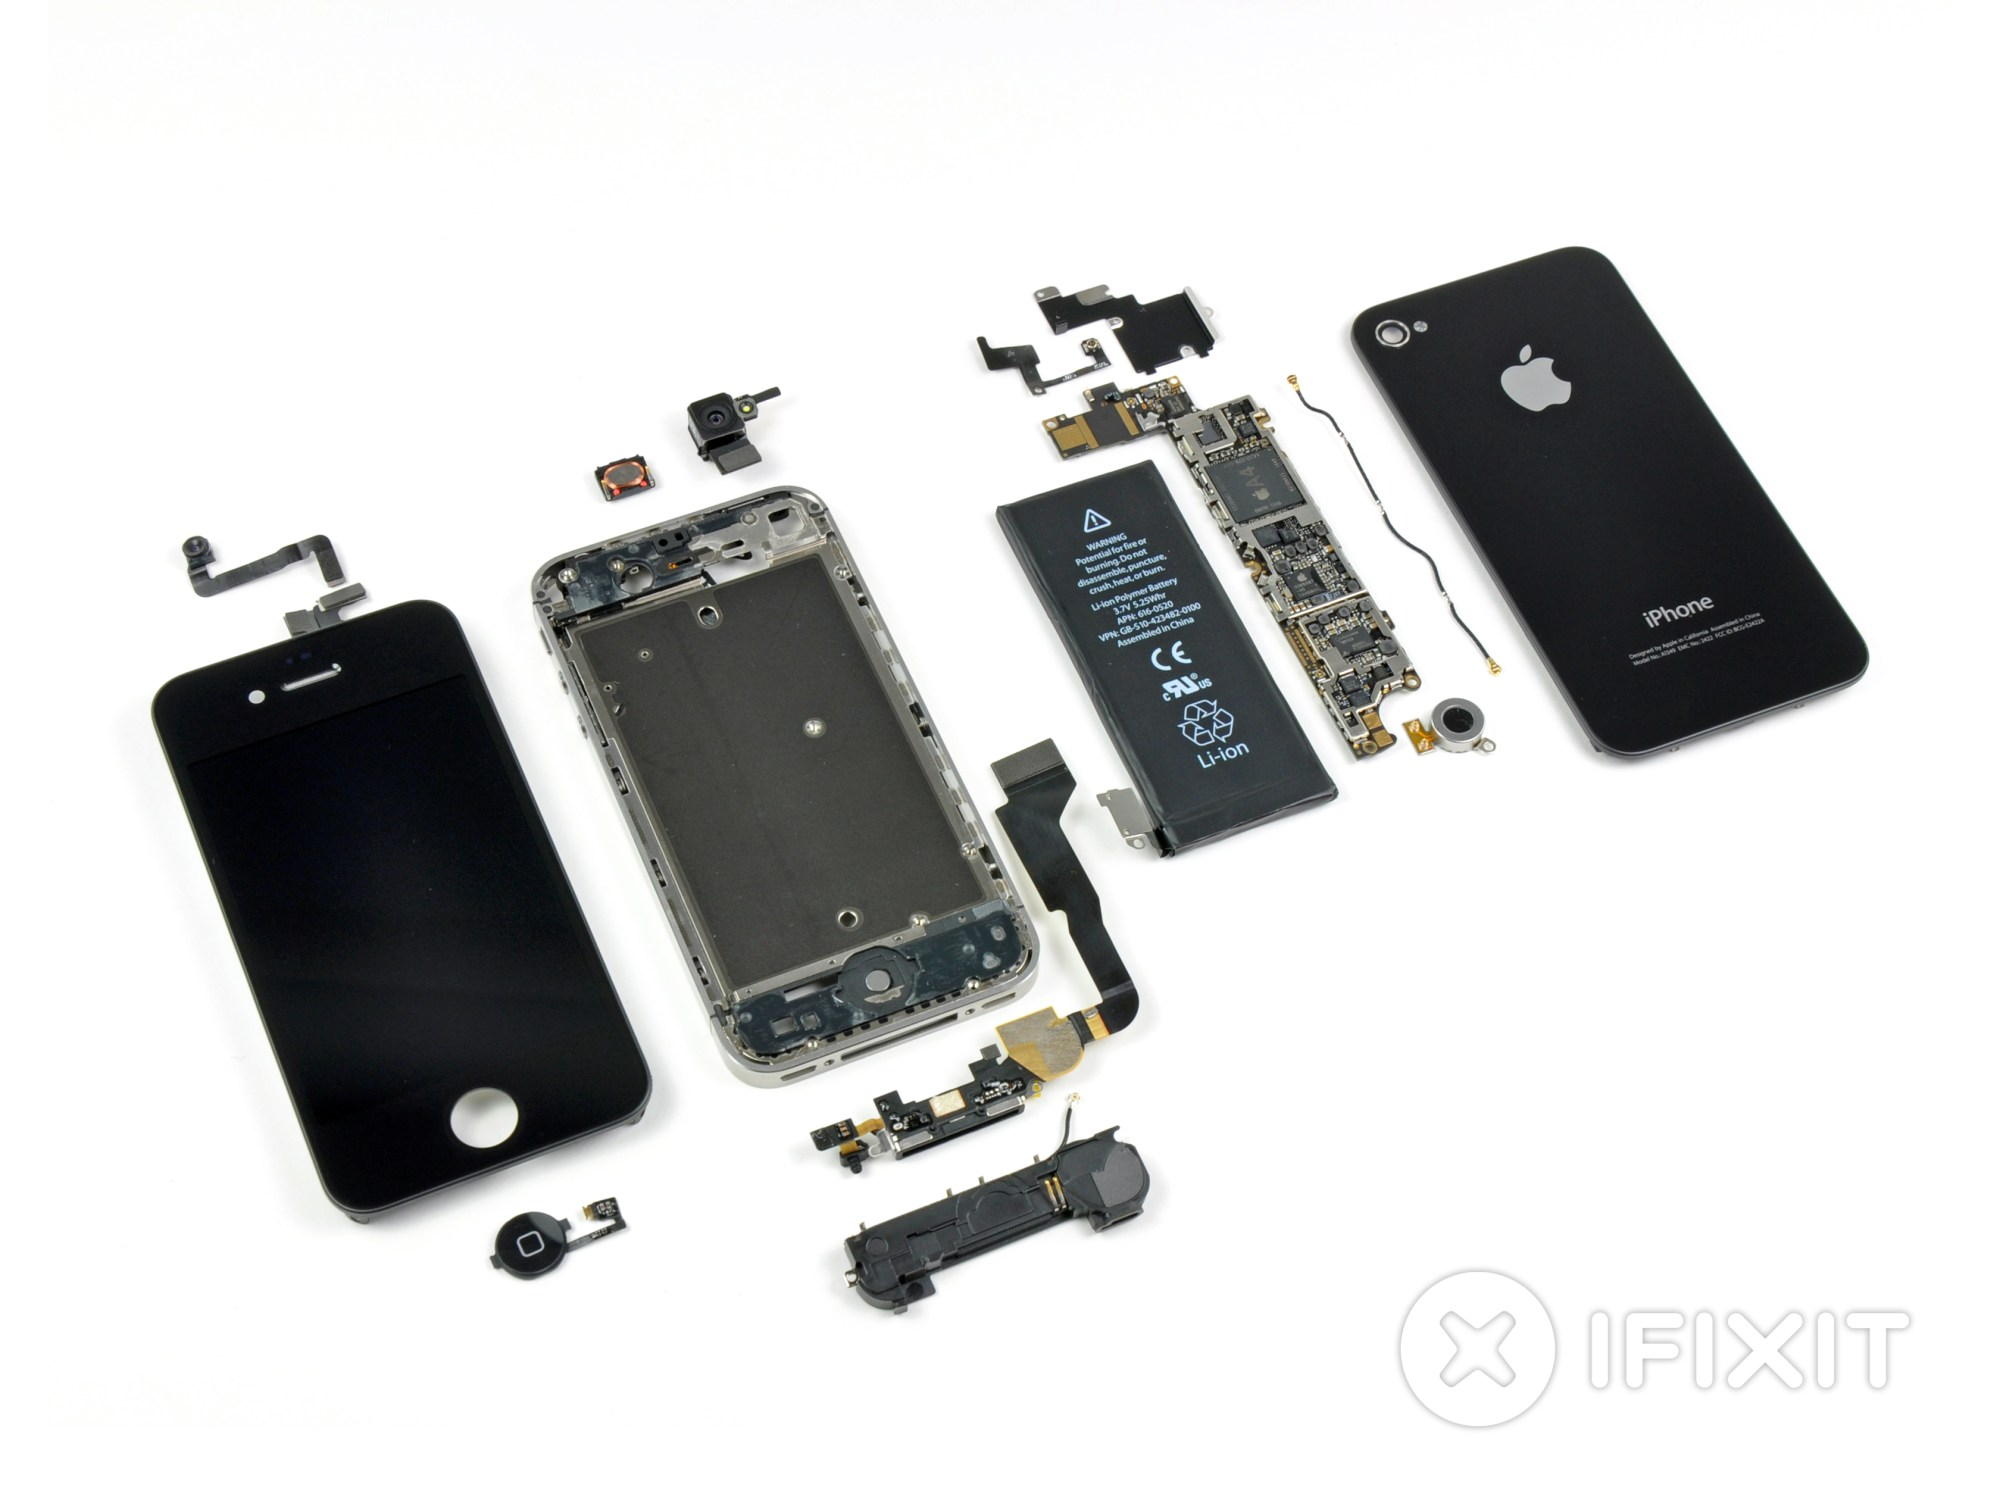 hight resolution of iphone 4 verizon teardown ifixit iphone 5 inside detailed diagram iphone 4 inside diagram